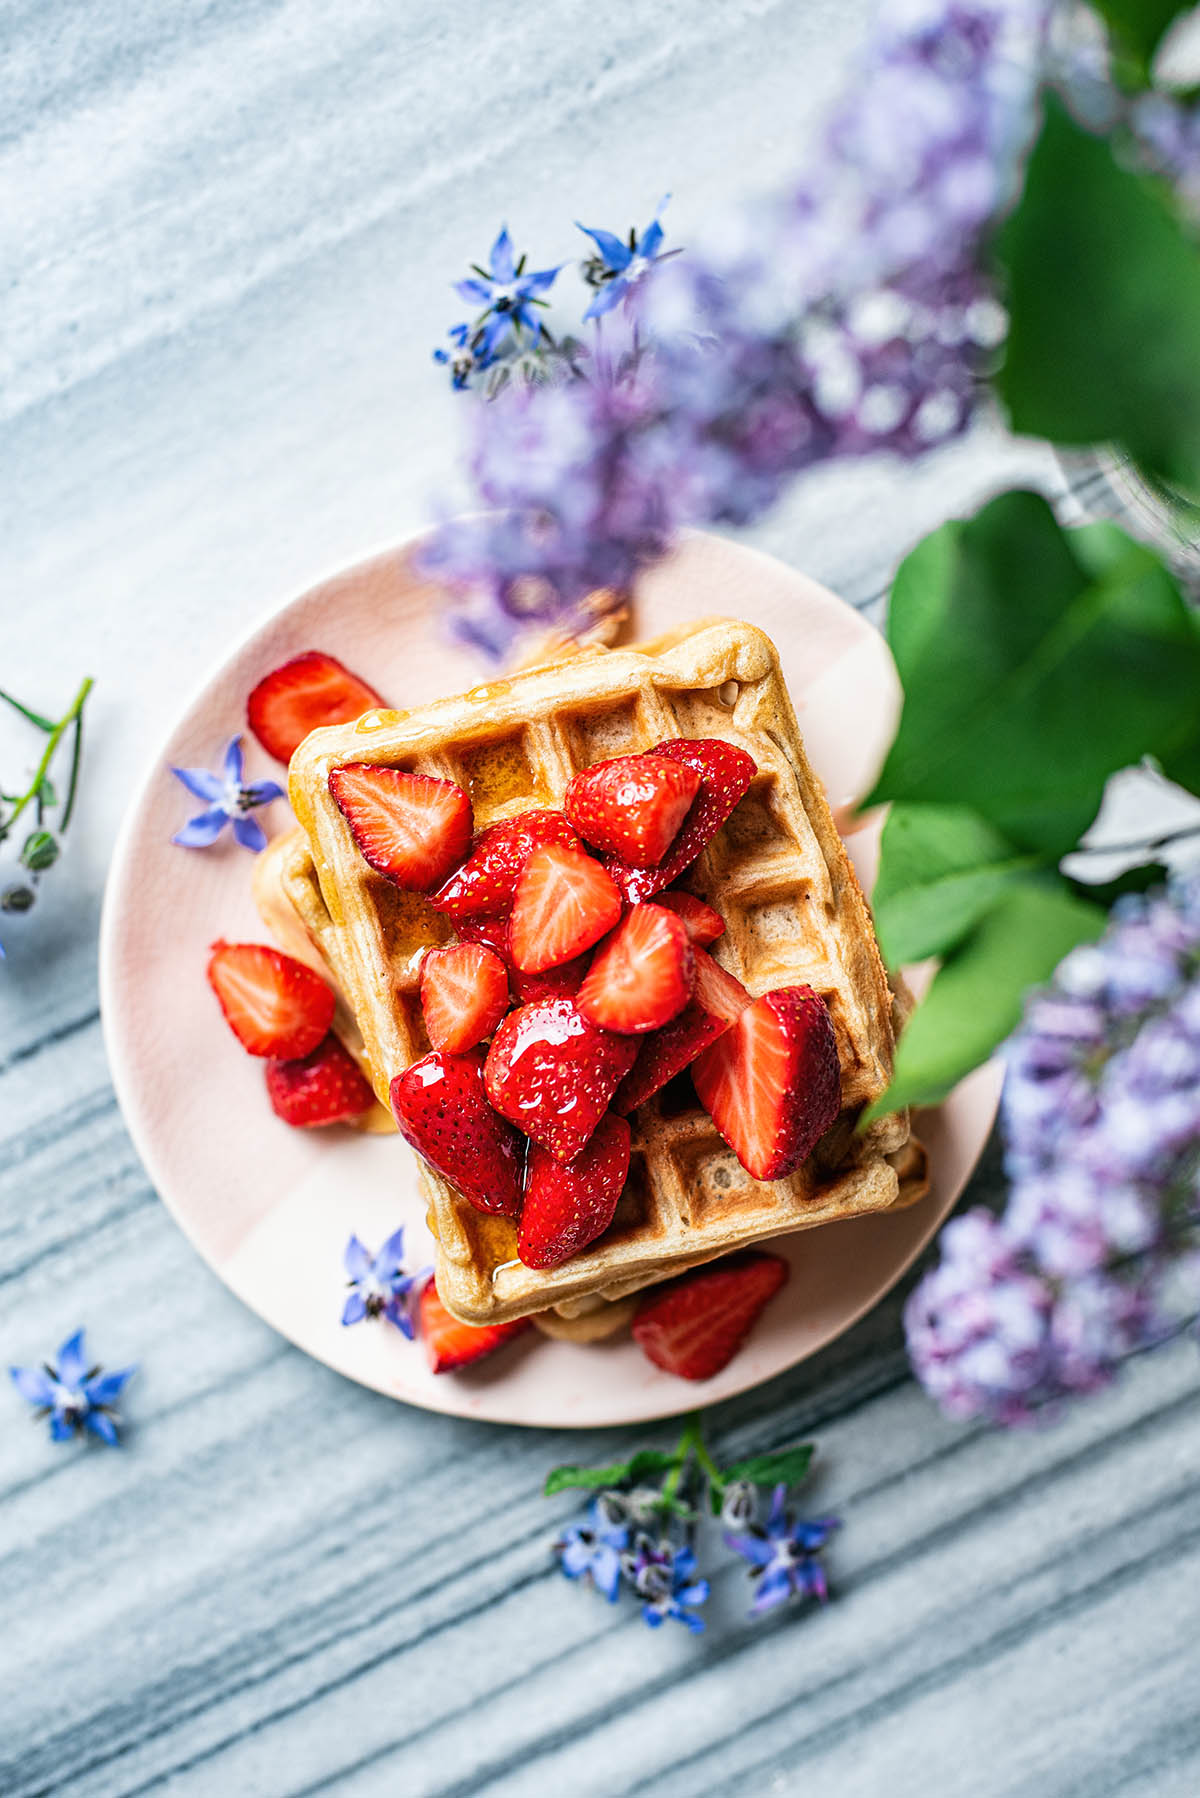 Waffles, from above, topped with strawberries and lilacs in foreground.